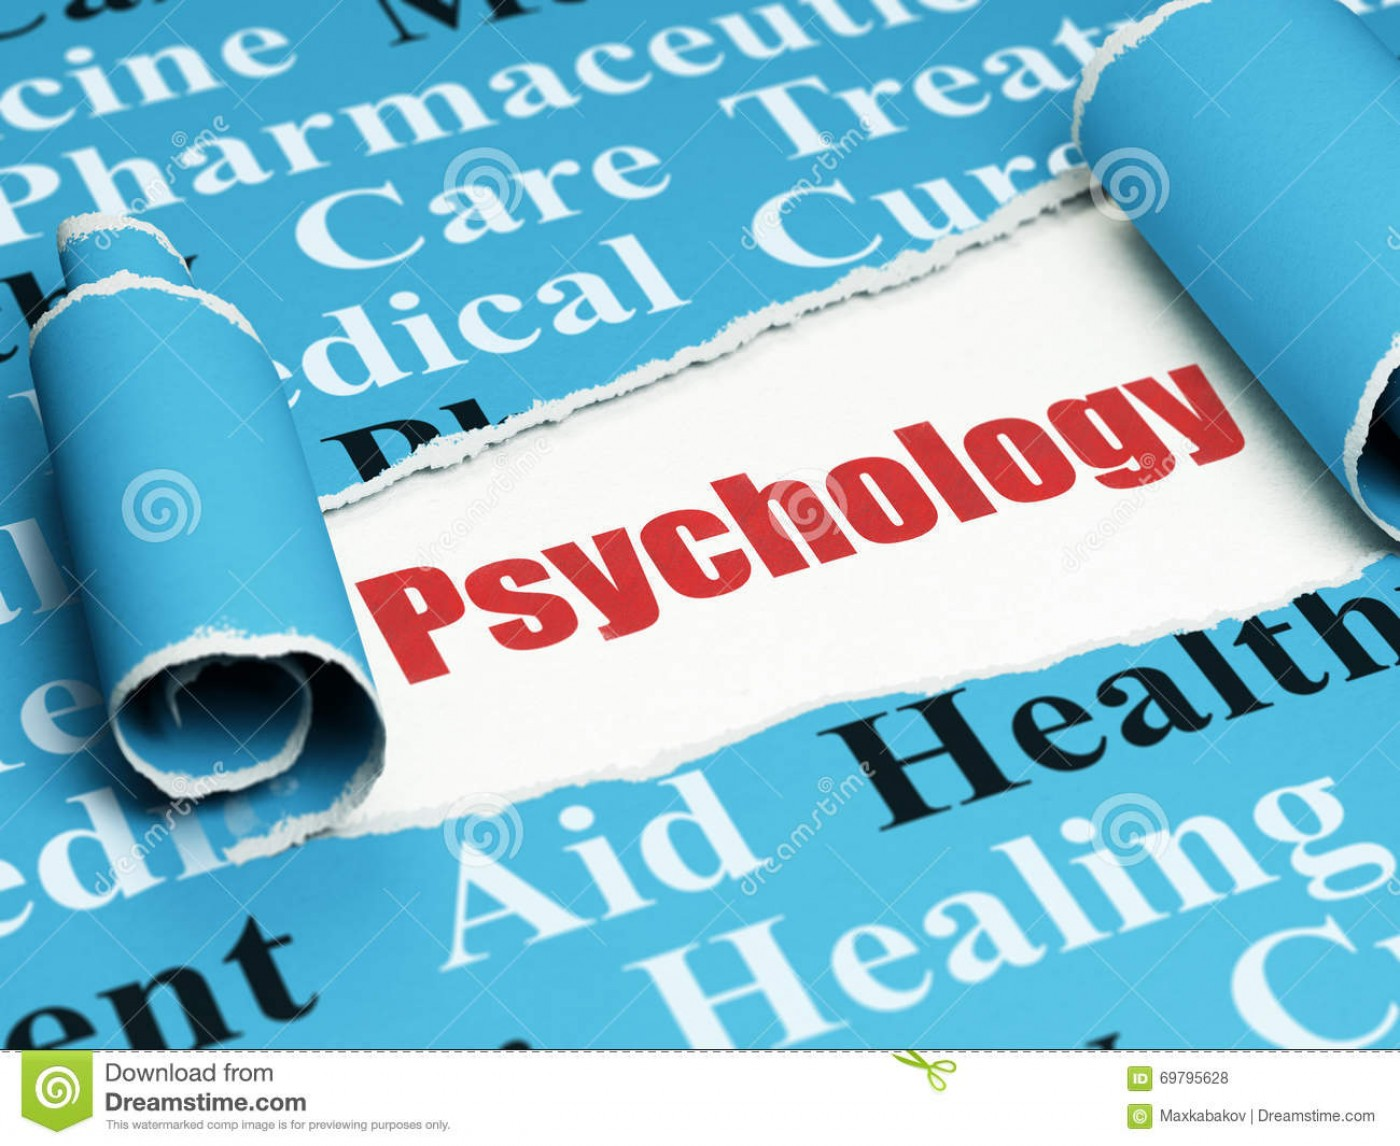 010 Research Paper Psychology On Dreams Health Concept Red Text Under Piece Torn Curled Blue Tag Cloud Rendering Singular Topics Articles 1400